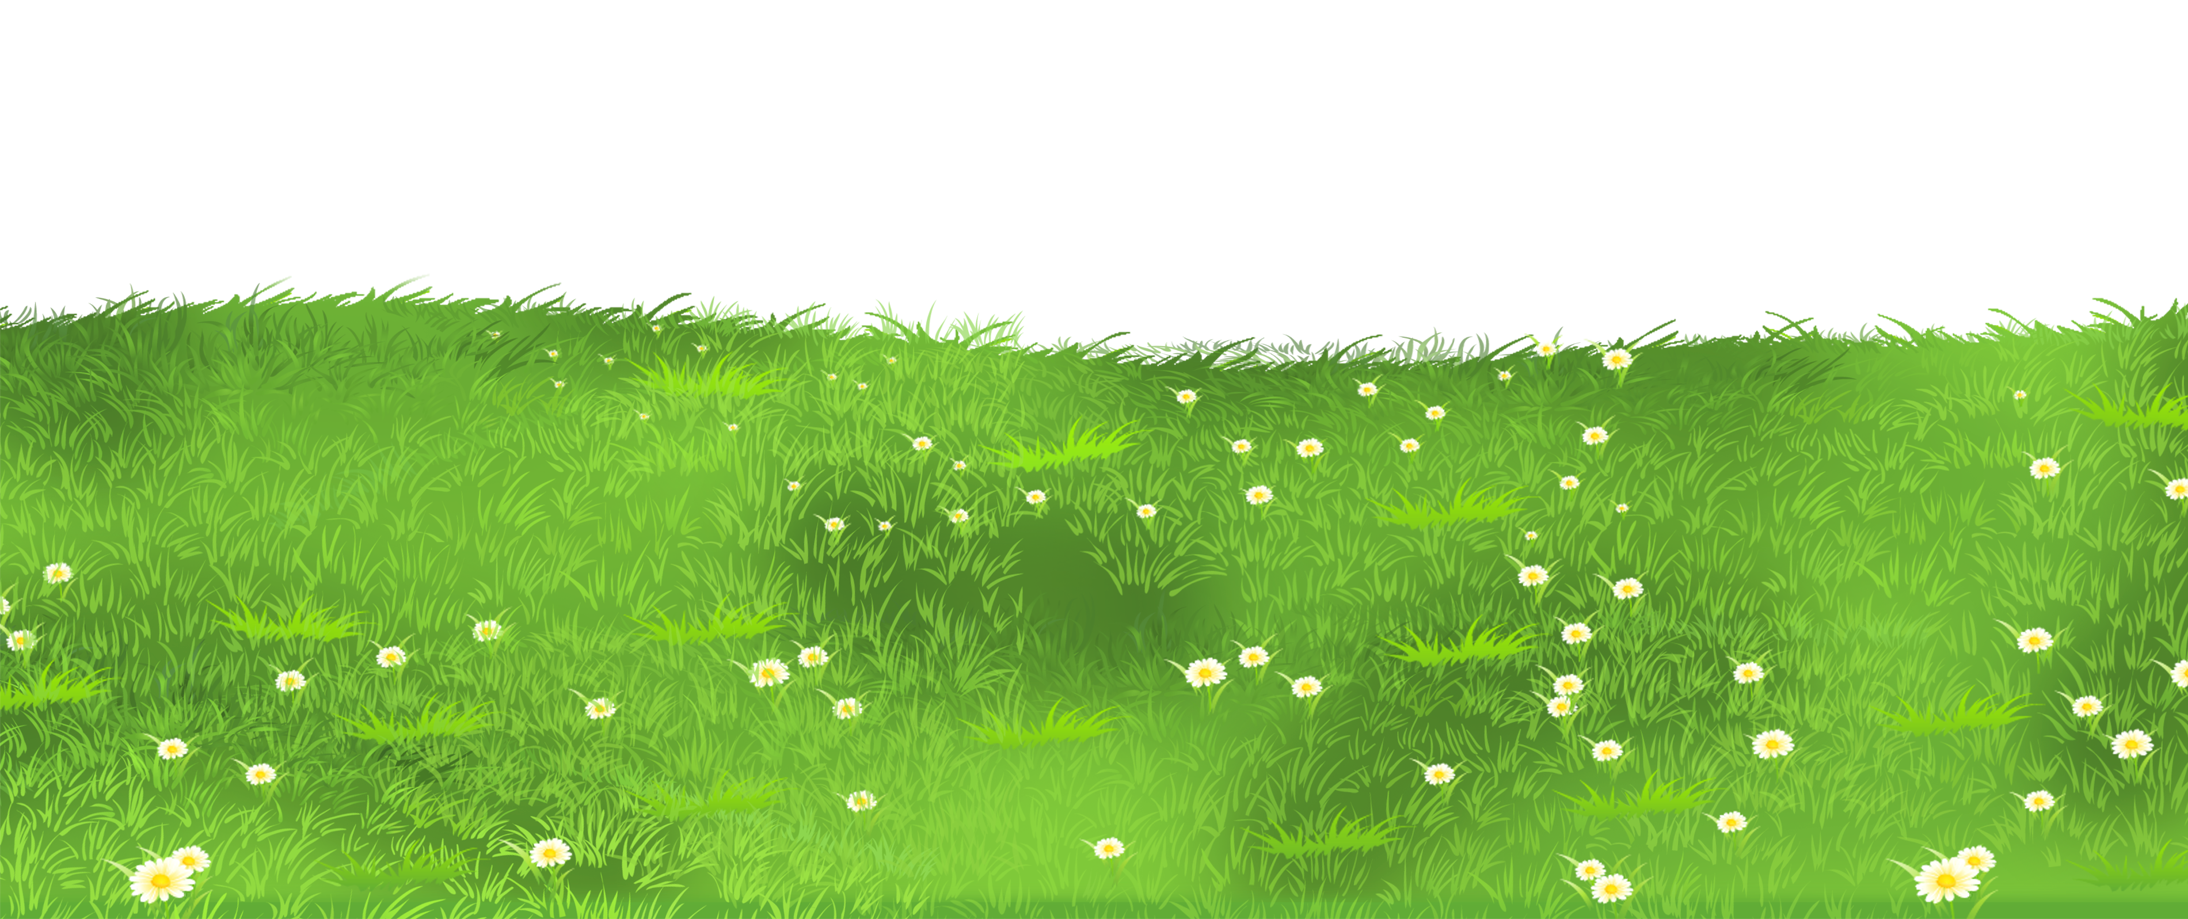 Green grass image diversos. Flower meadow clipart